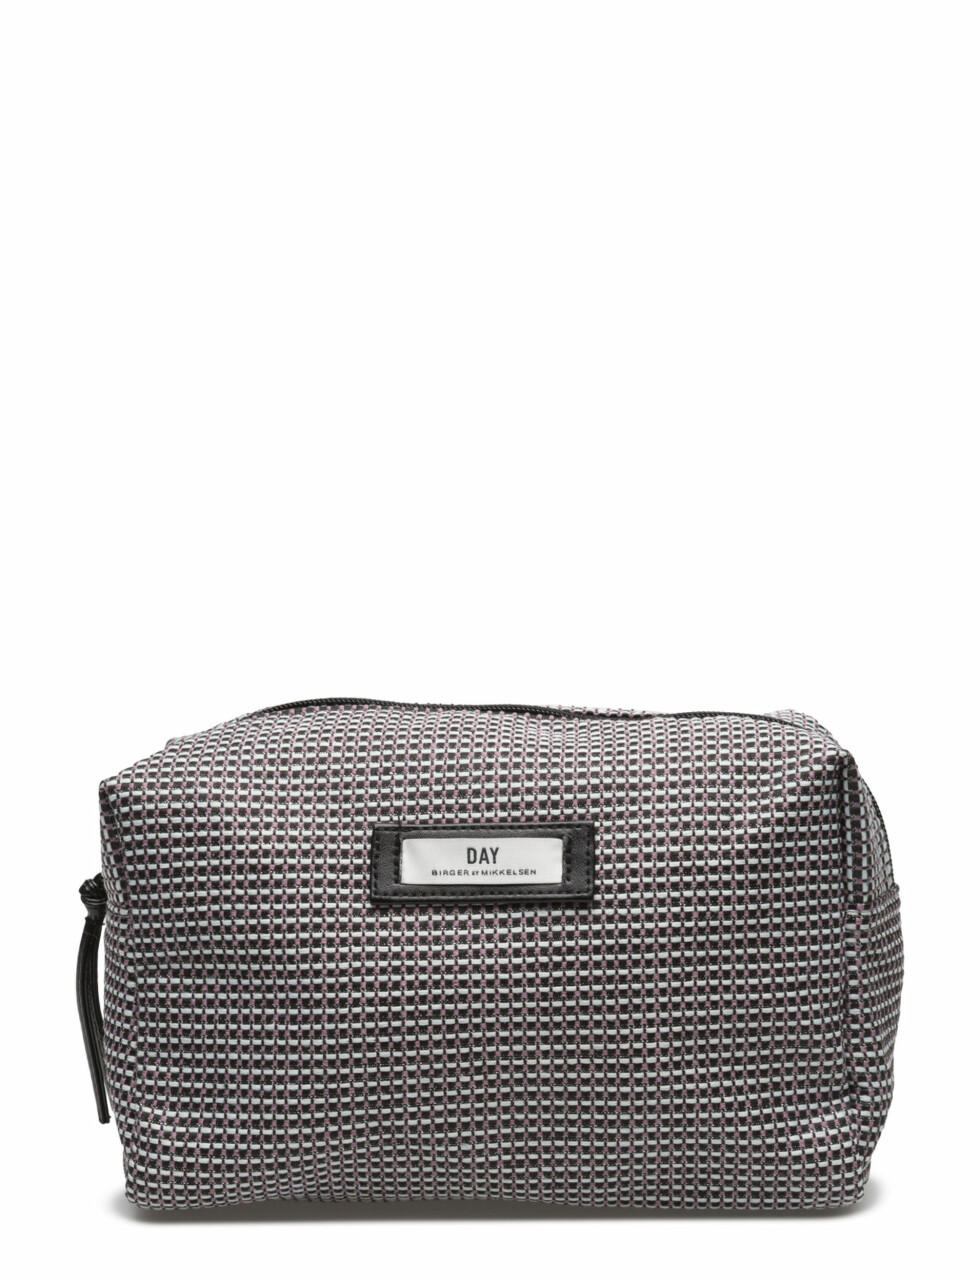 Toalettmappe fra Day Birger et Mikkelsen via Boozt.com |349,-| https://www.boozt.com/no/no/day-et/day-gweneth-weft-beauty_15782976/15782978?navId=67535&group=listing&position=1400000